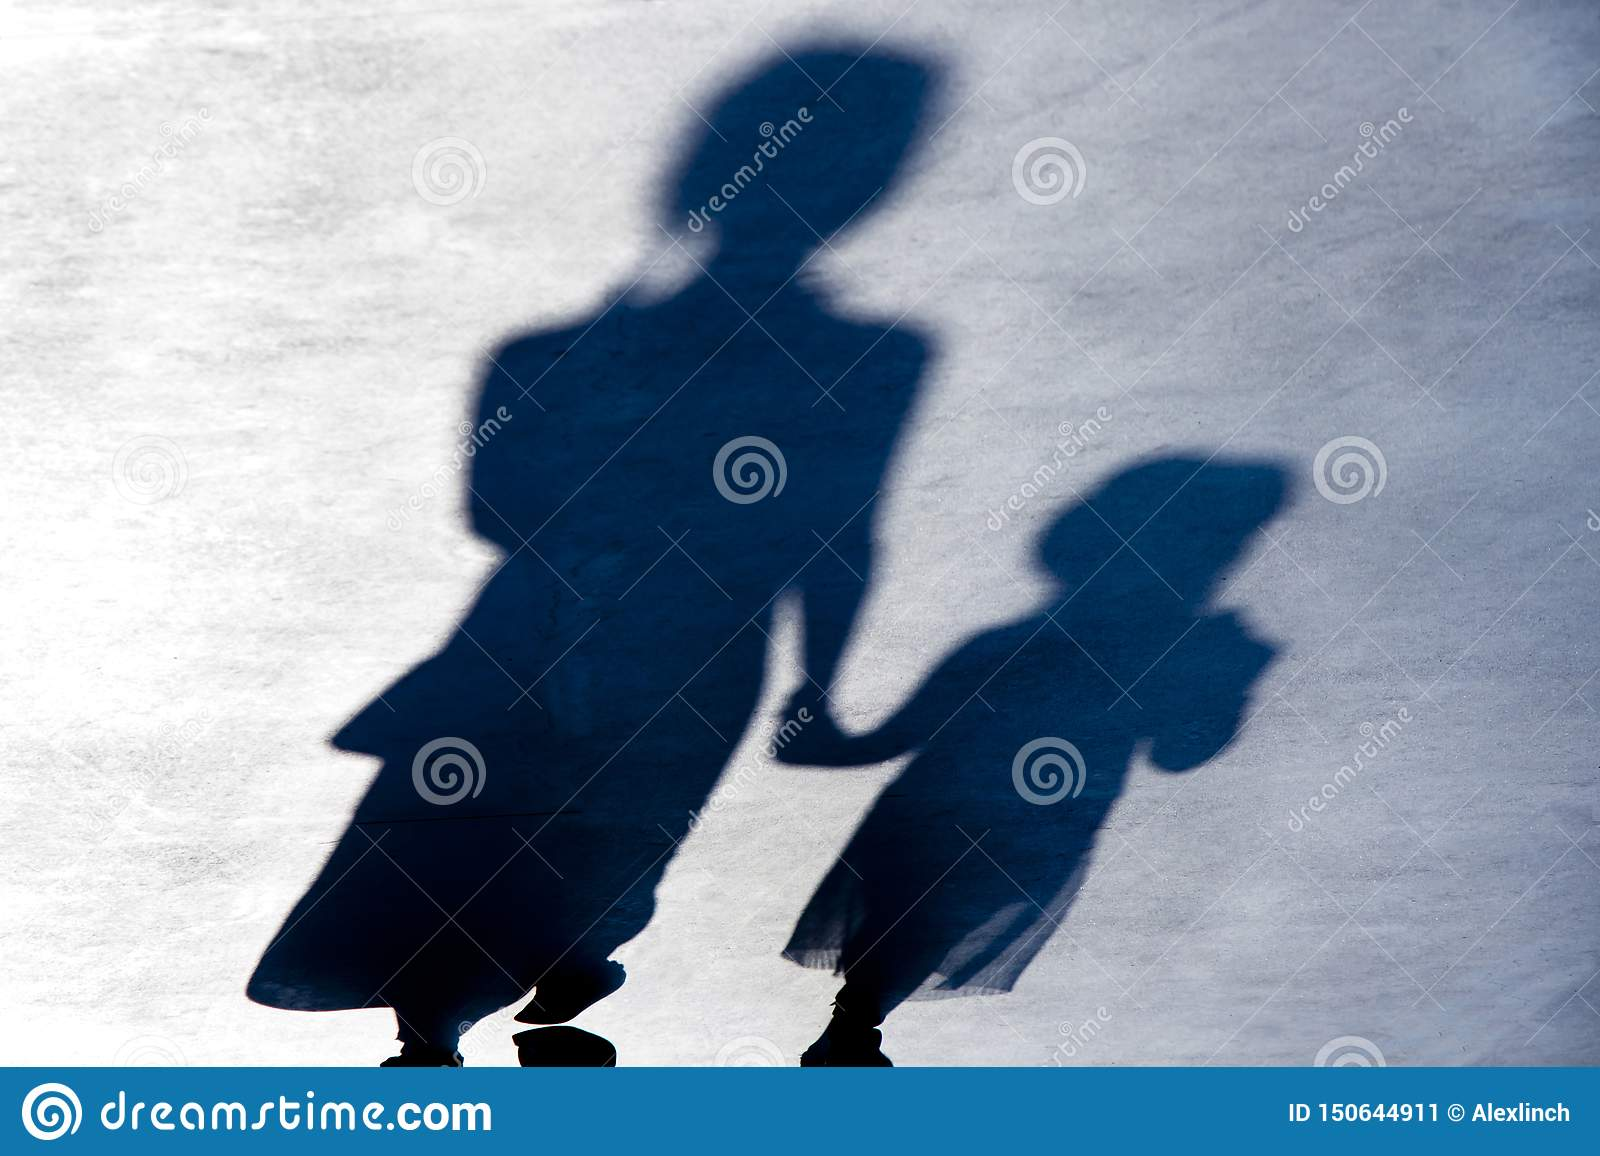 Blurry vintage shadows silhouettes of two person walking in the night